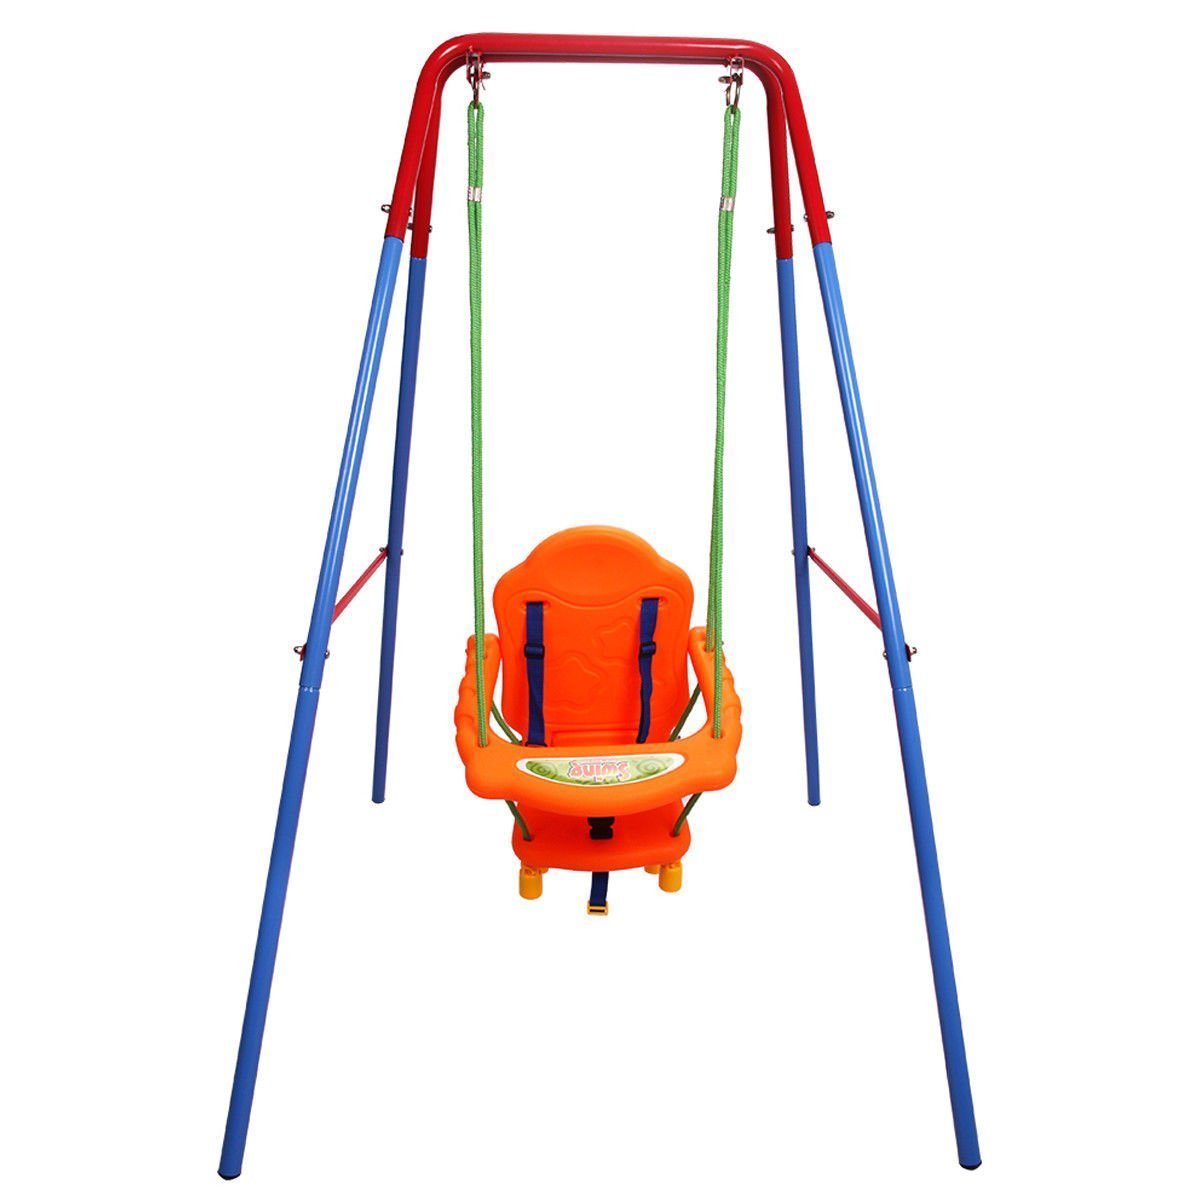 Costzon Toddler Swing Set, High Back Seat with Safety Belt, A-Frame Outdoor Swing Chair, Metal Swing Set for Backyard